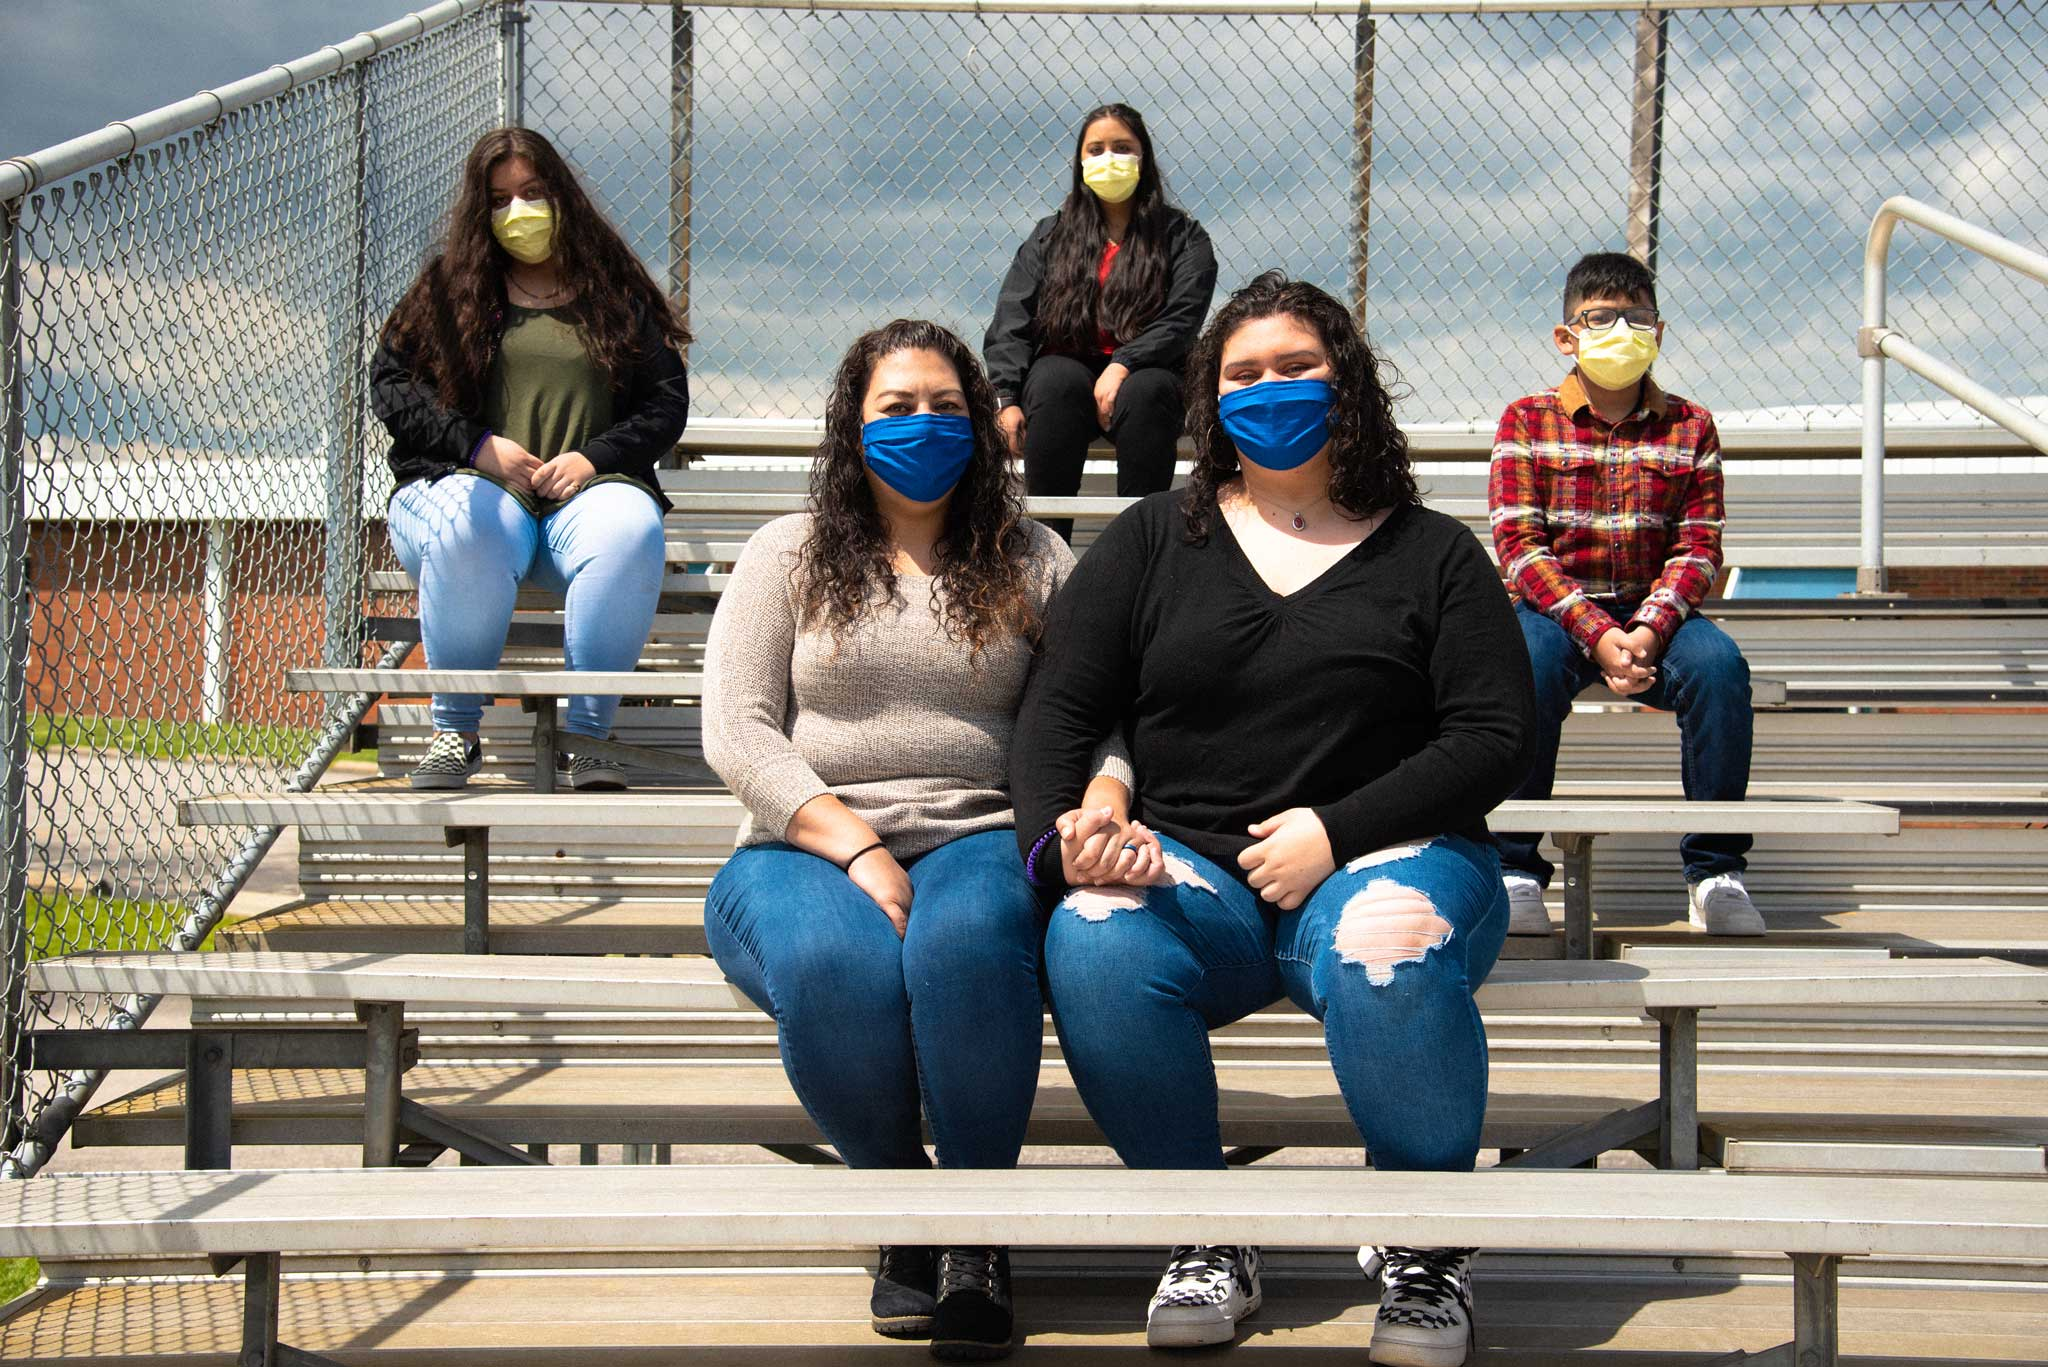 Faith and her mom wear blue face masks and hold hands, while her three siblings wear masks sitting behind them.